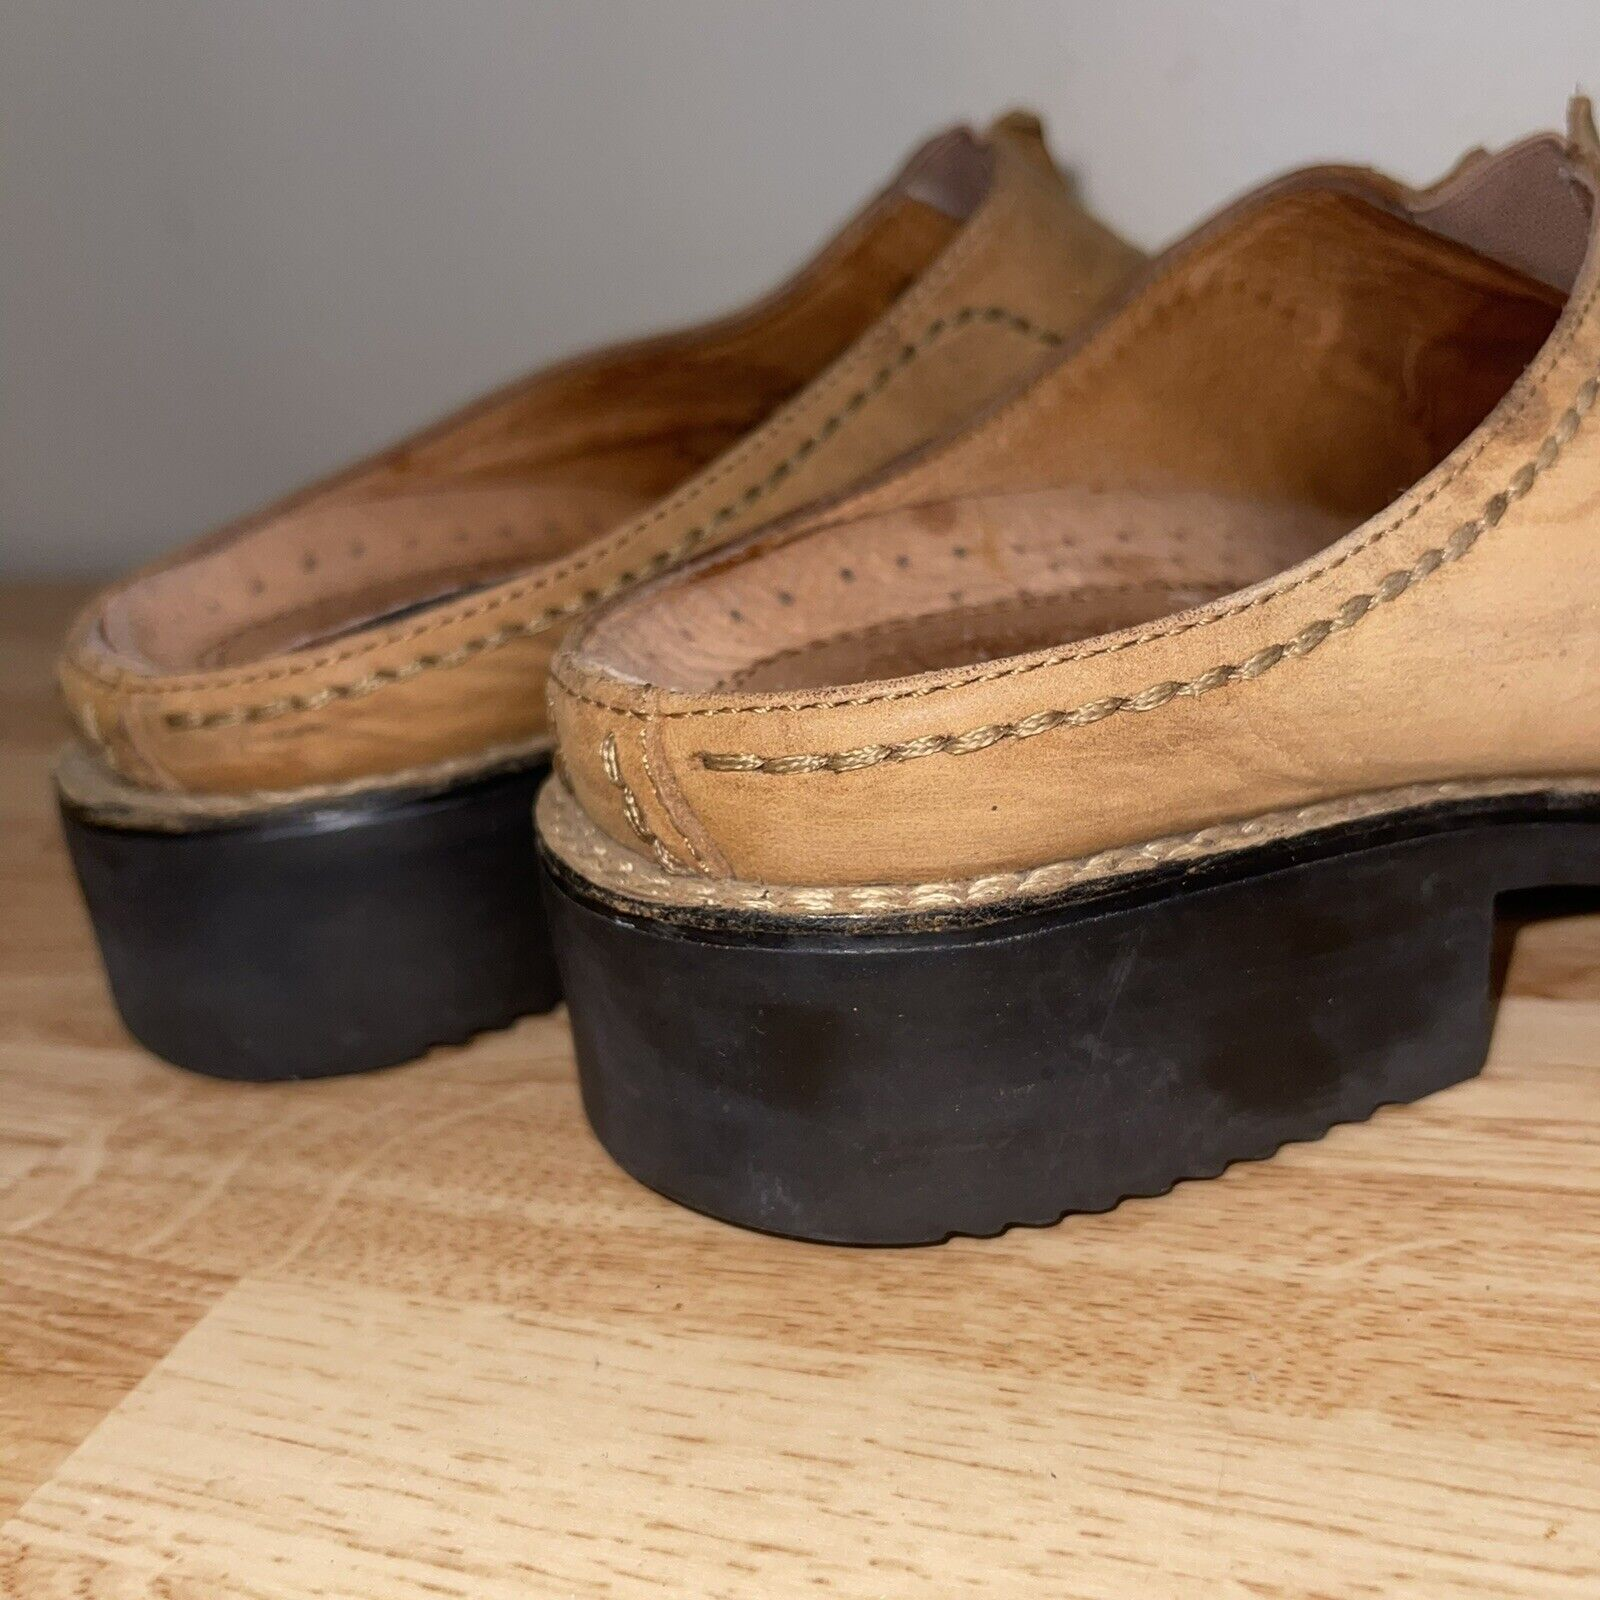 Ariat Leather Mules Clog Women's Size 7 Slip On Shoes Duratread Tan Brown